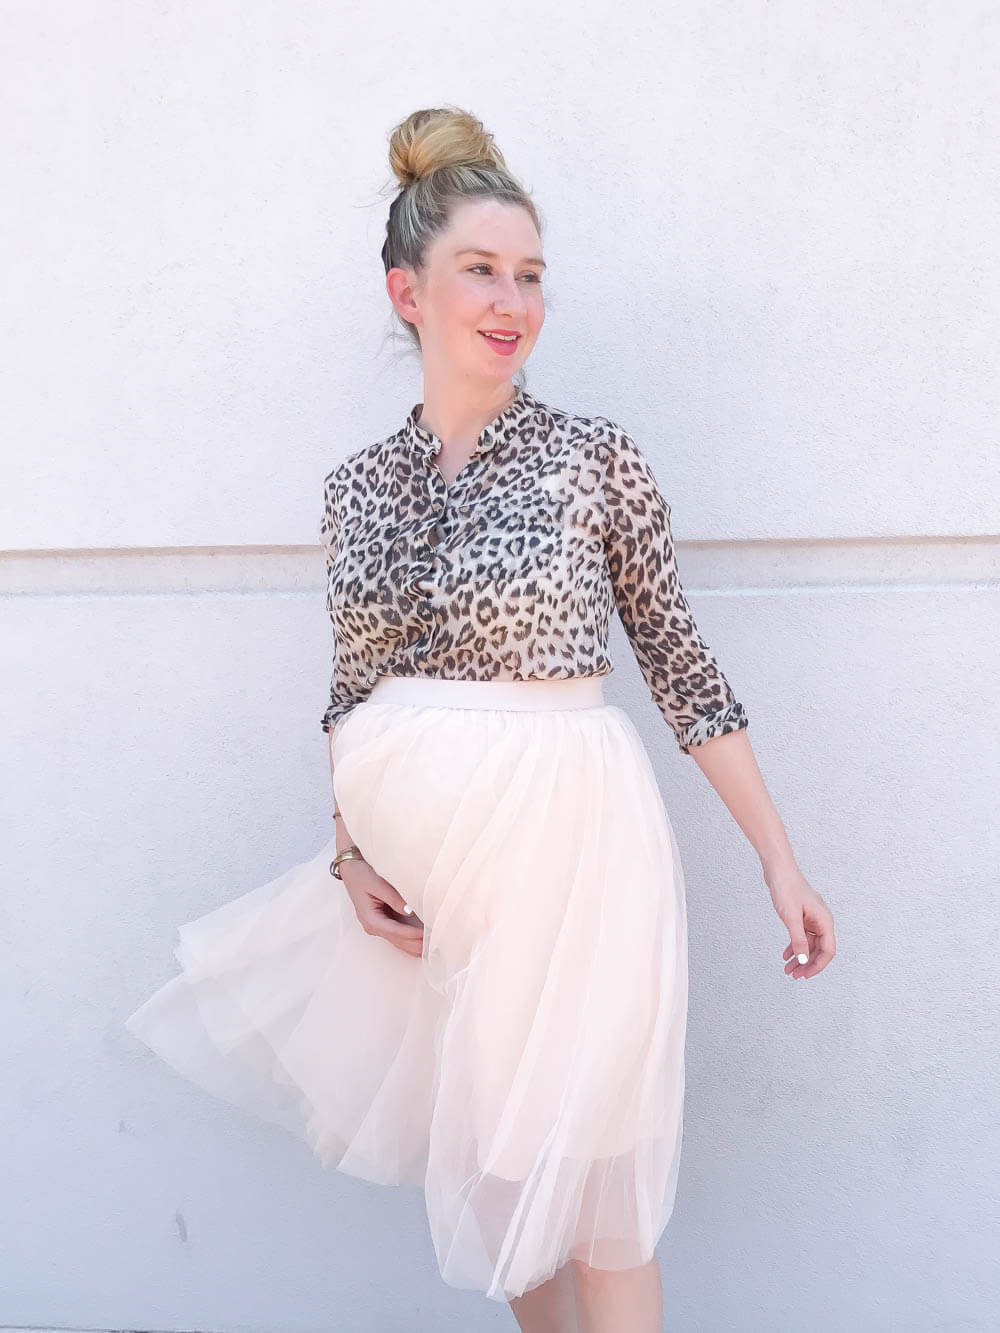 Tulle+Maternity+Skirt+and+Leopard+Top+_+Maternity+Clothes+_+Bump+Style+Summer+_+Maternity+Fashion+_+Bump+Style+_+Shop+Pink+Blush+Maternity (1).jpg